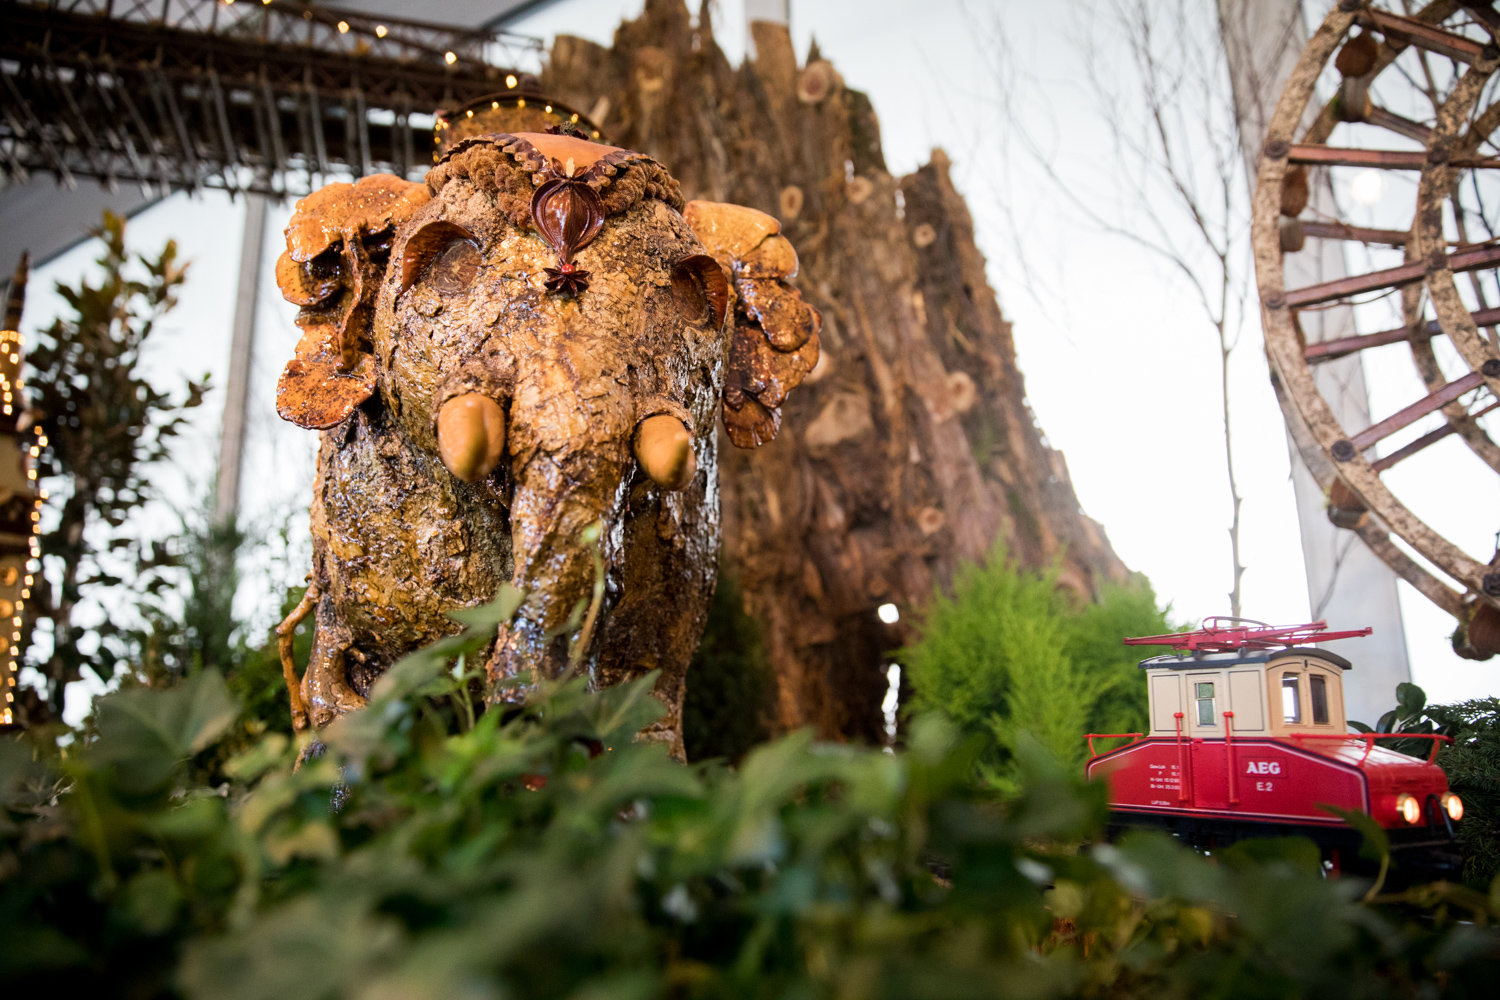 The Holiday Train Show at the New York Botanical Garden brings together different eras of New York City, including a scaled down replica of the Elephantine Colossus, a late 18th century Coney Island attraction that was destroyed in 1896.